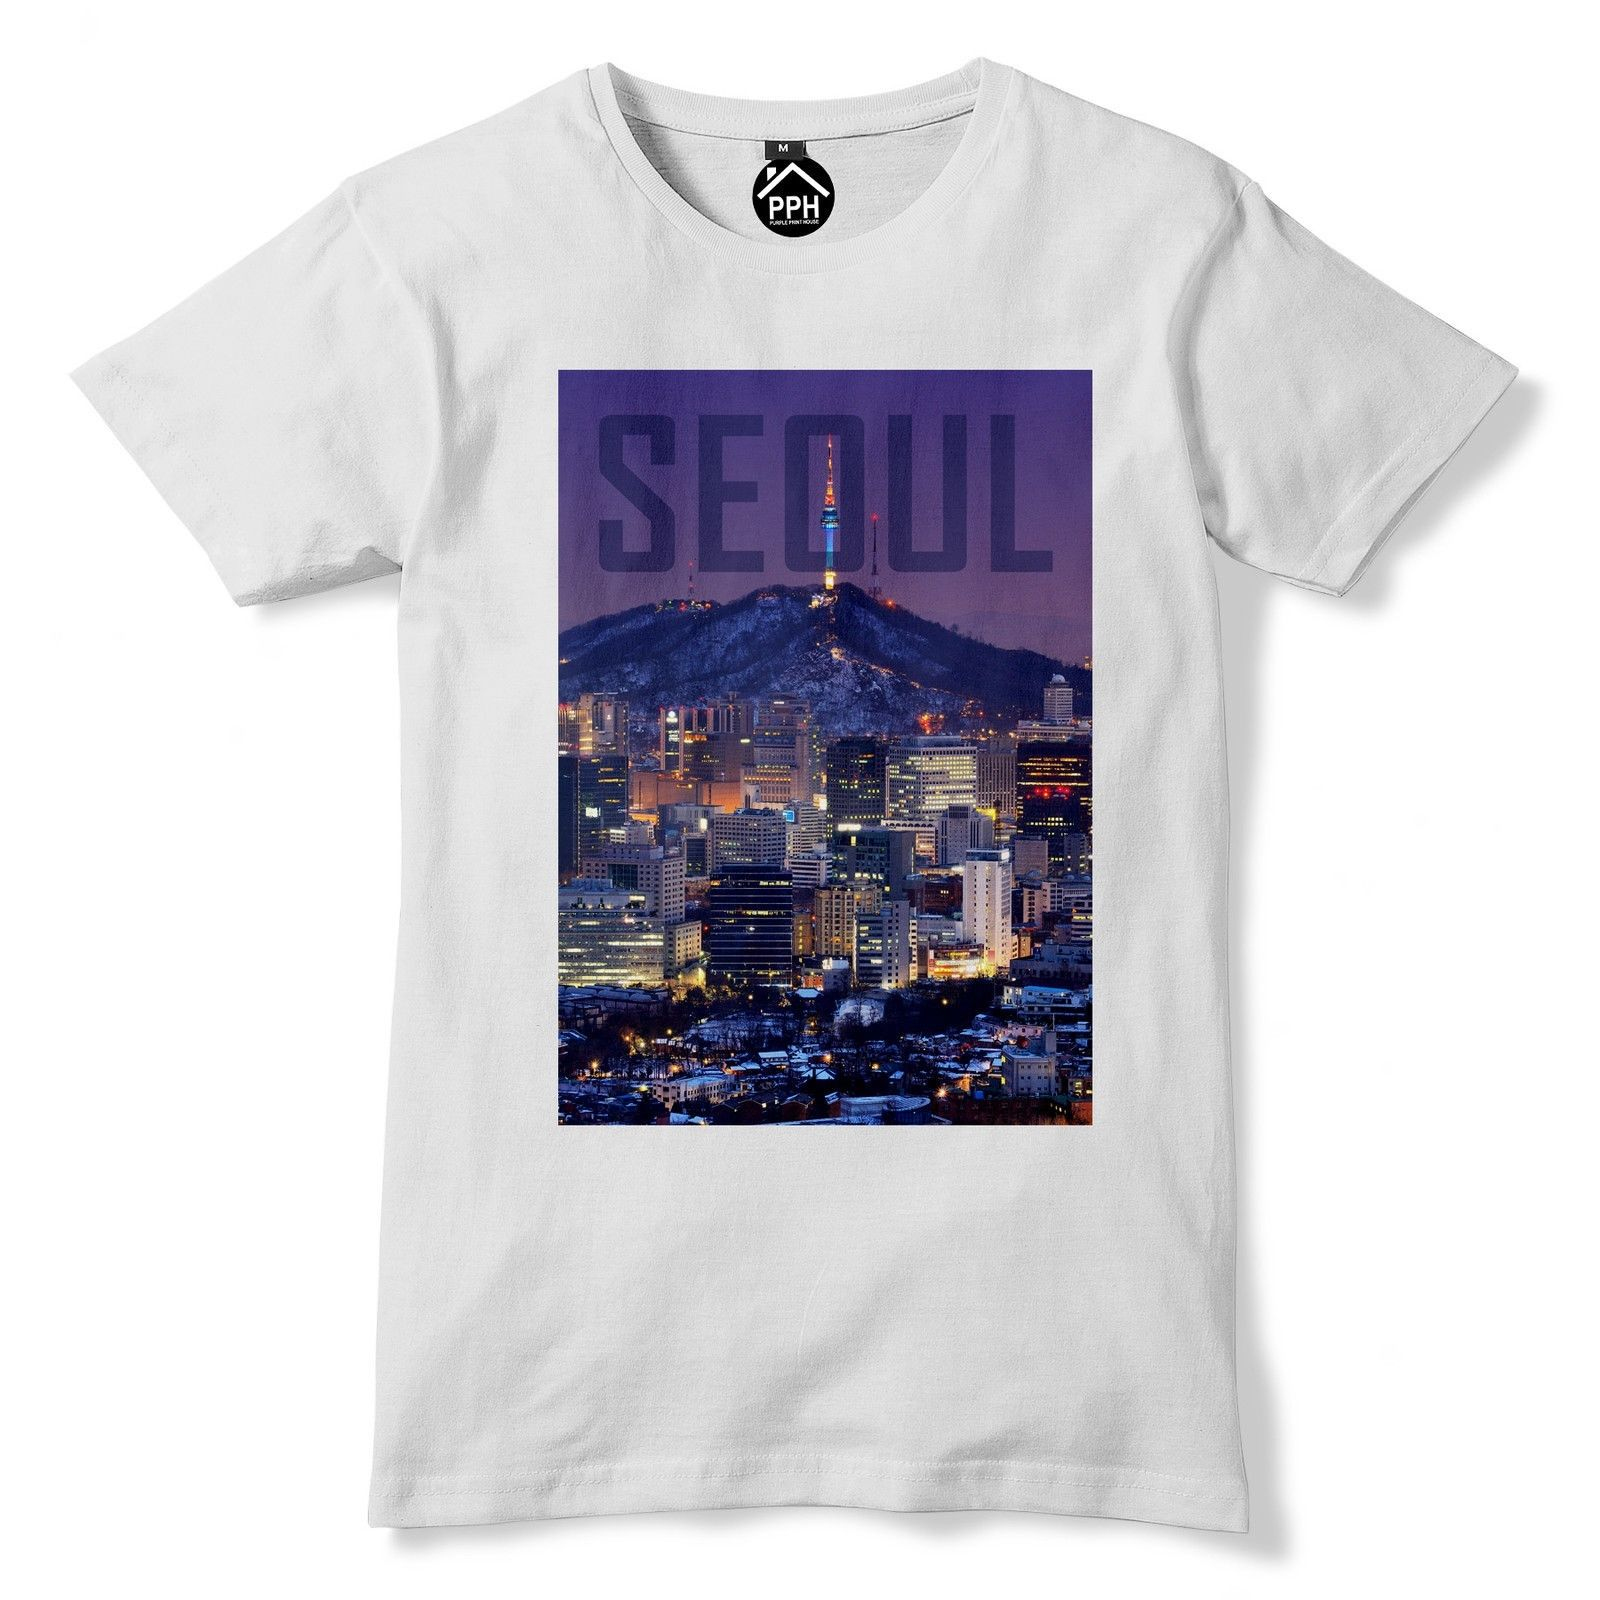 Seoul Tshirt South Korea T Shirt Asia Top Cityscape Skyscrapers Dongdaemun 154 Summer The New Fashion